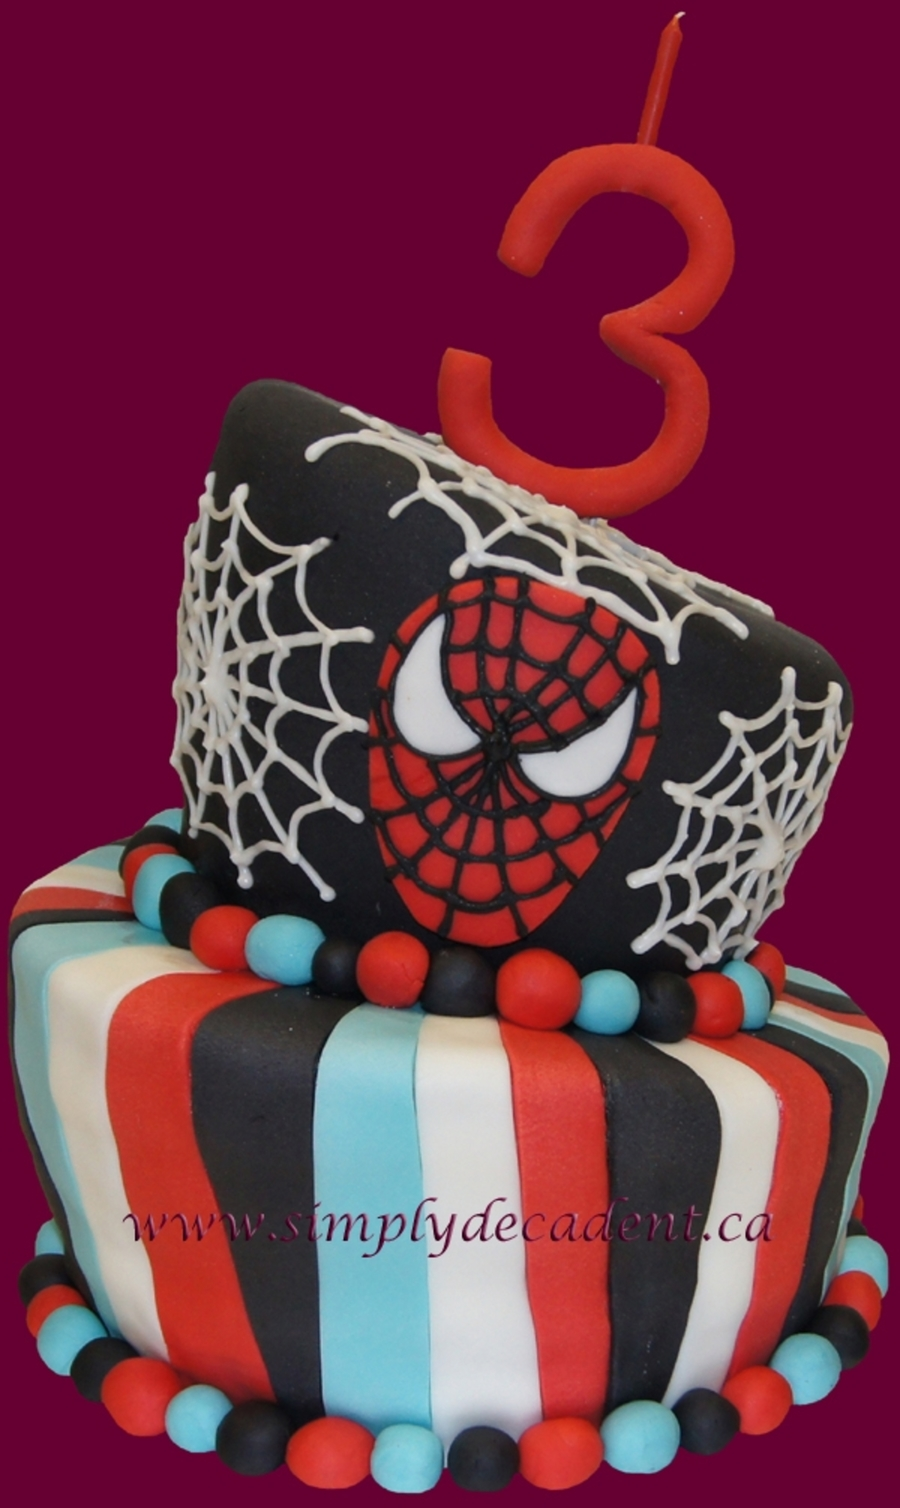 3D Spiderman Topsy Turvy Cake on Cake Central